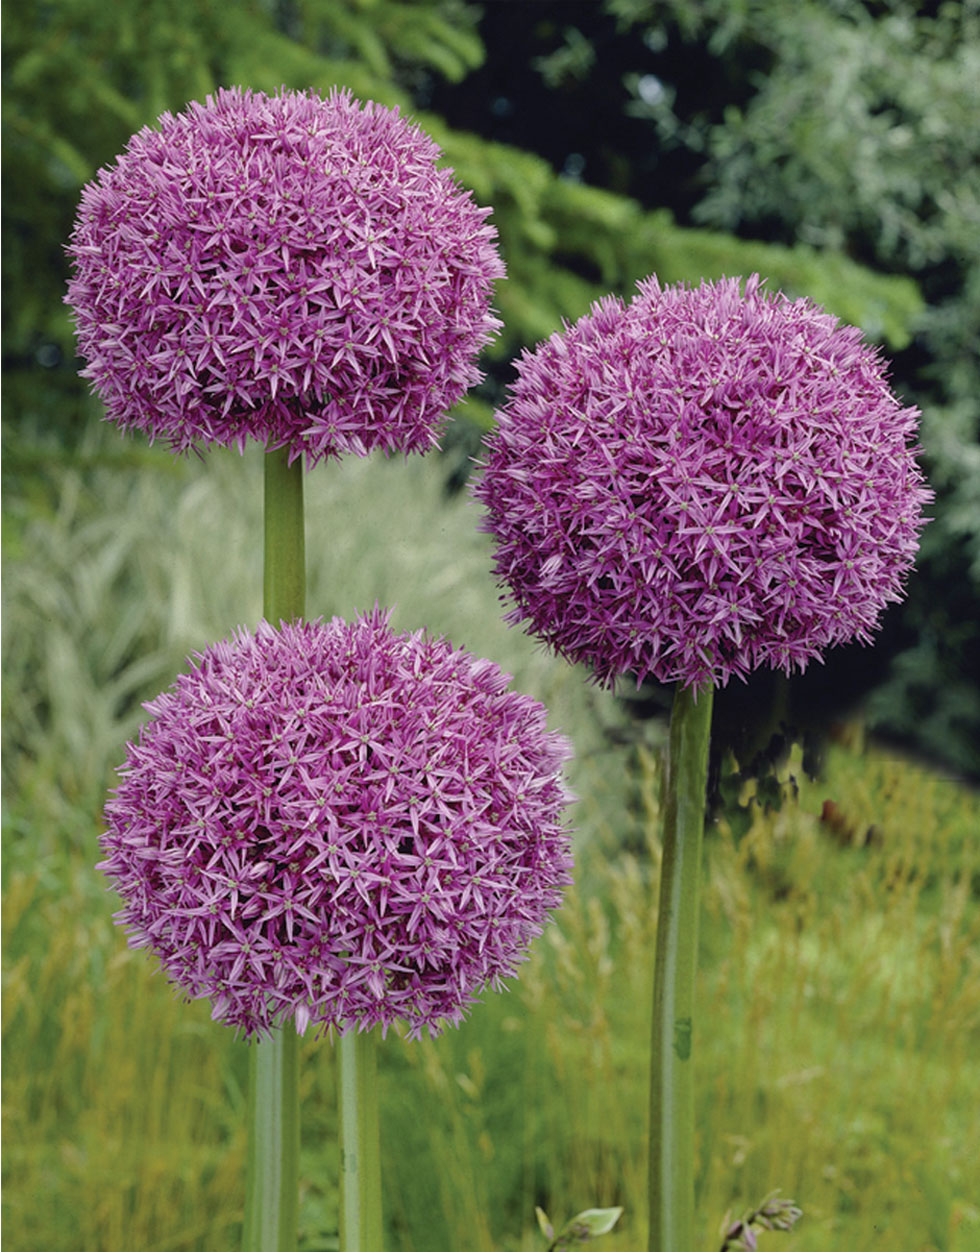 Allium giganteum Seeds from Mr Fothergill's Seeds and Plants